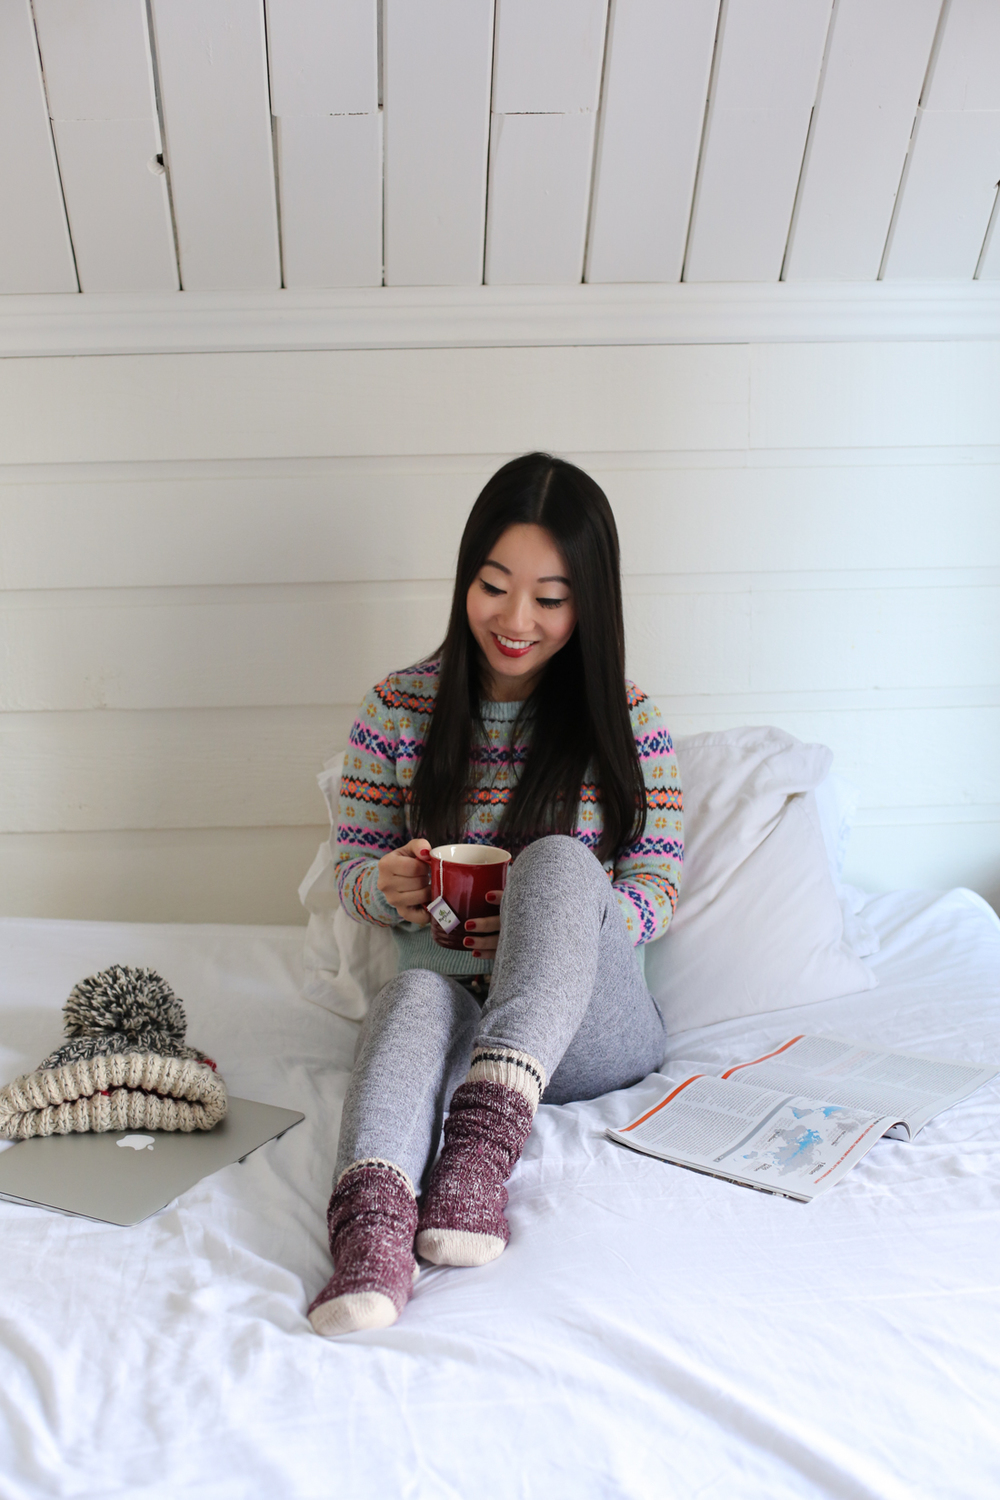 Outfit: Roots Skinny Cozy Sweatpants, J. Crew fair isle sweater, Roots Cabin Collection socks,  Roots Chunky Cabin Toque. Mug: Le Creuset; Tea: Might Leaf Tea Earl Grey; Lips: LAURA MERCIER Creme Smooth lipstick